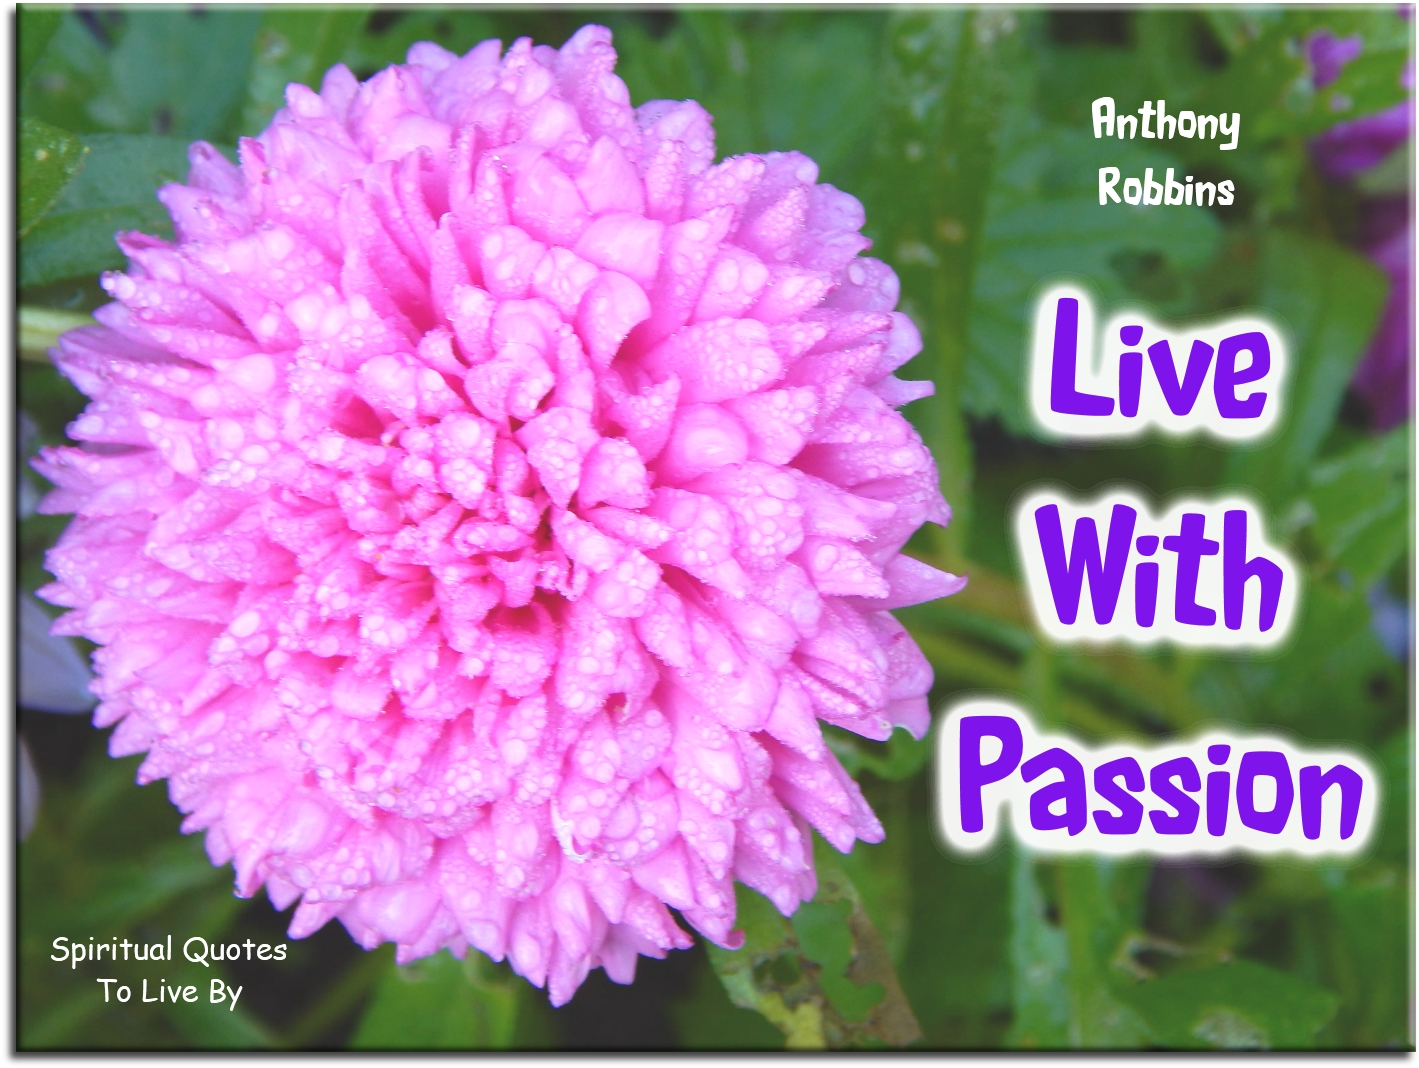 Anthony Robbins quote: Live with passion. - Spiritual Quotes To Live By